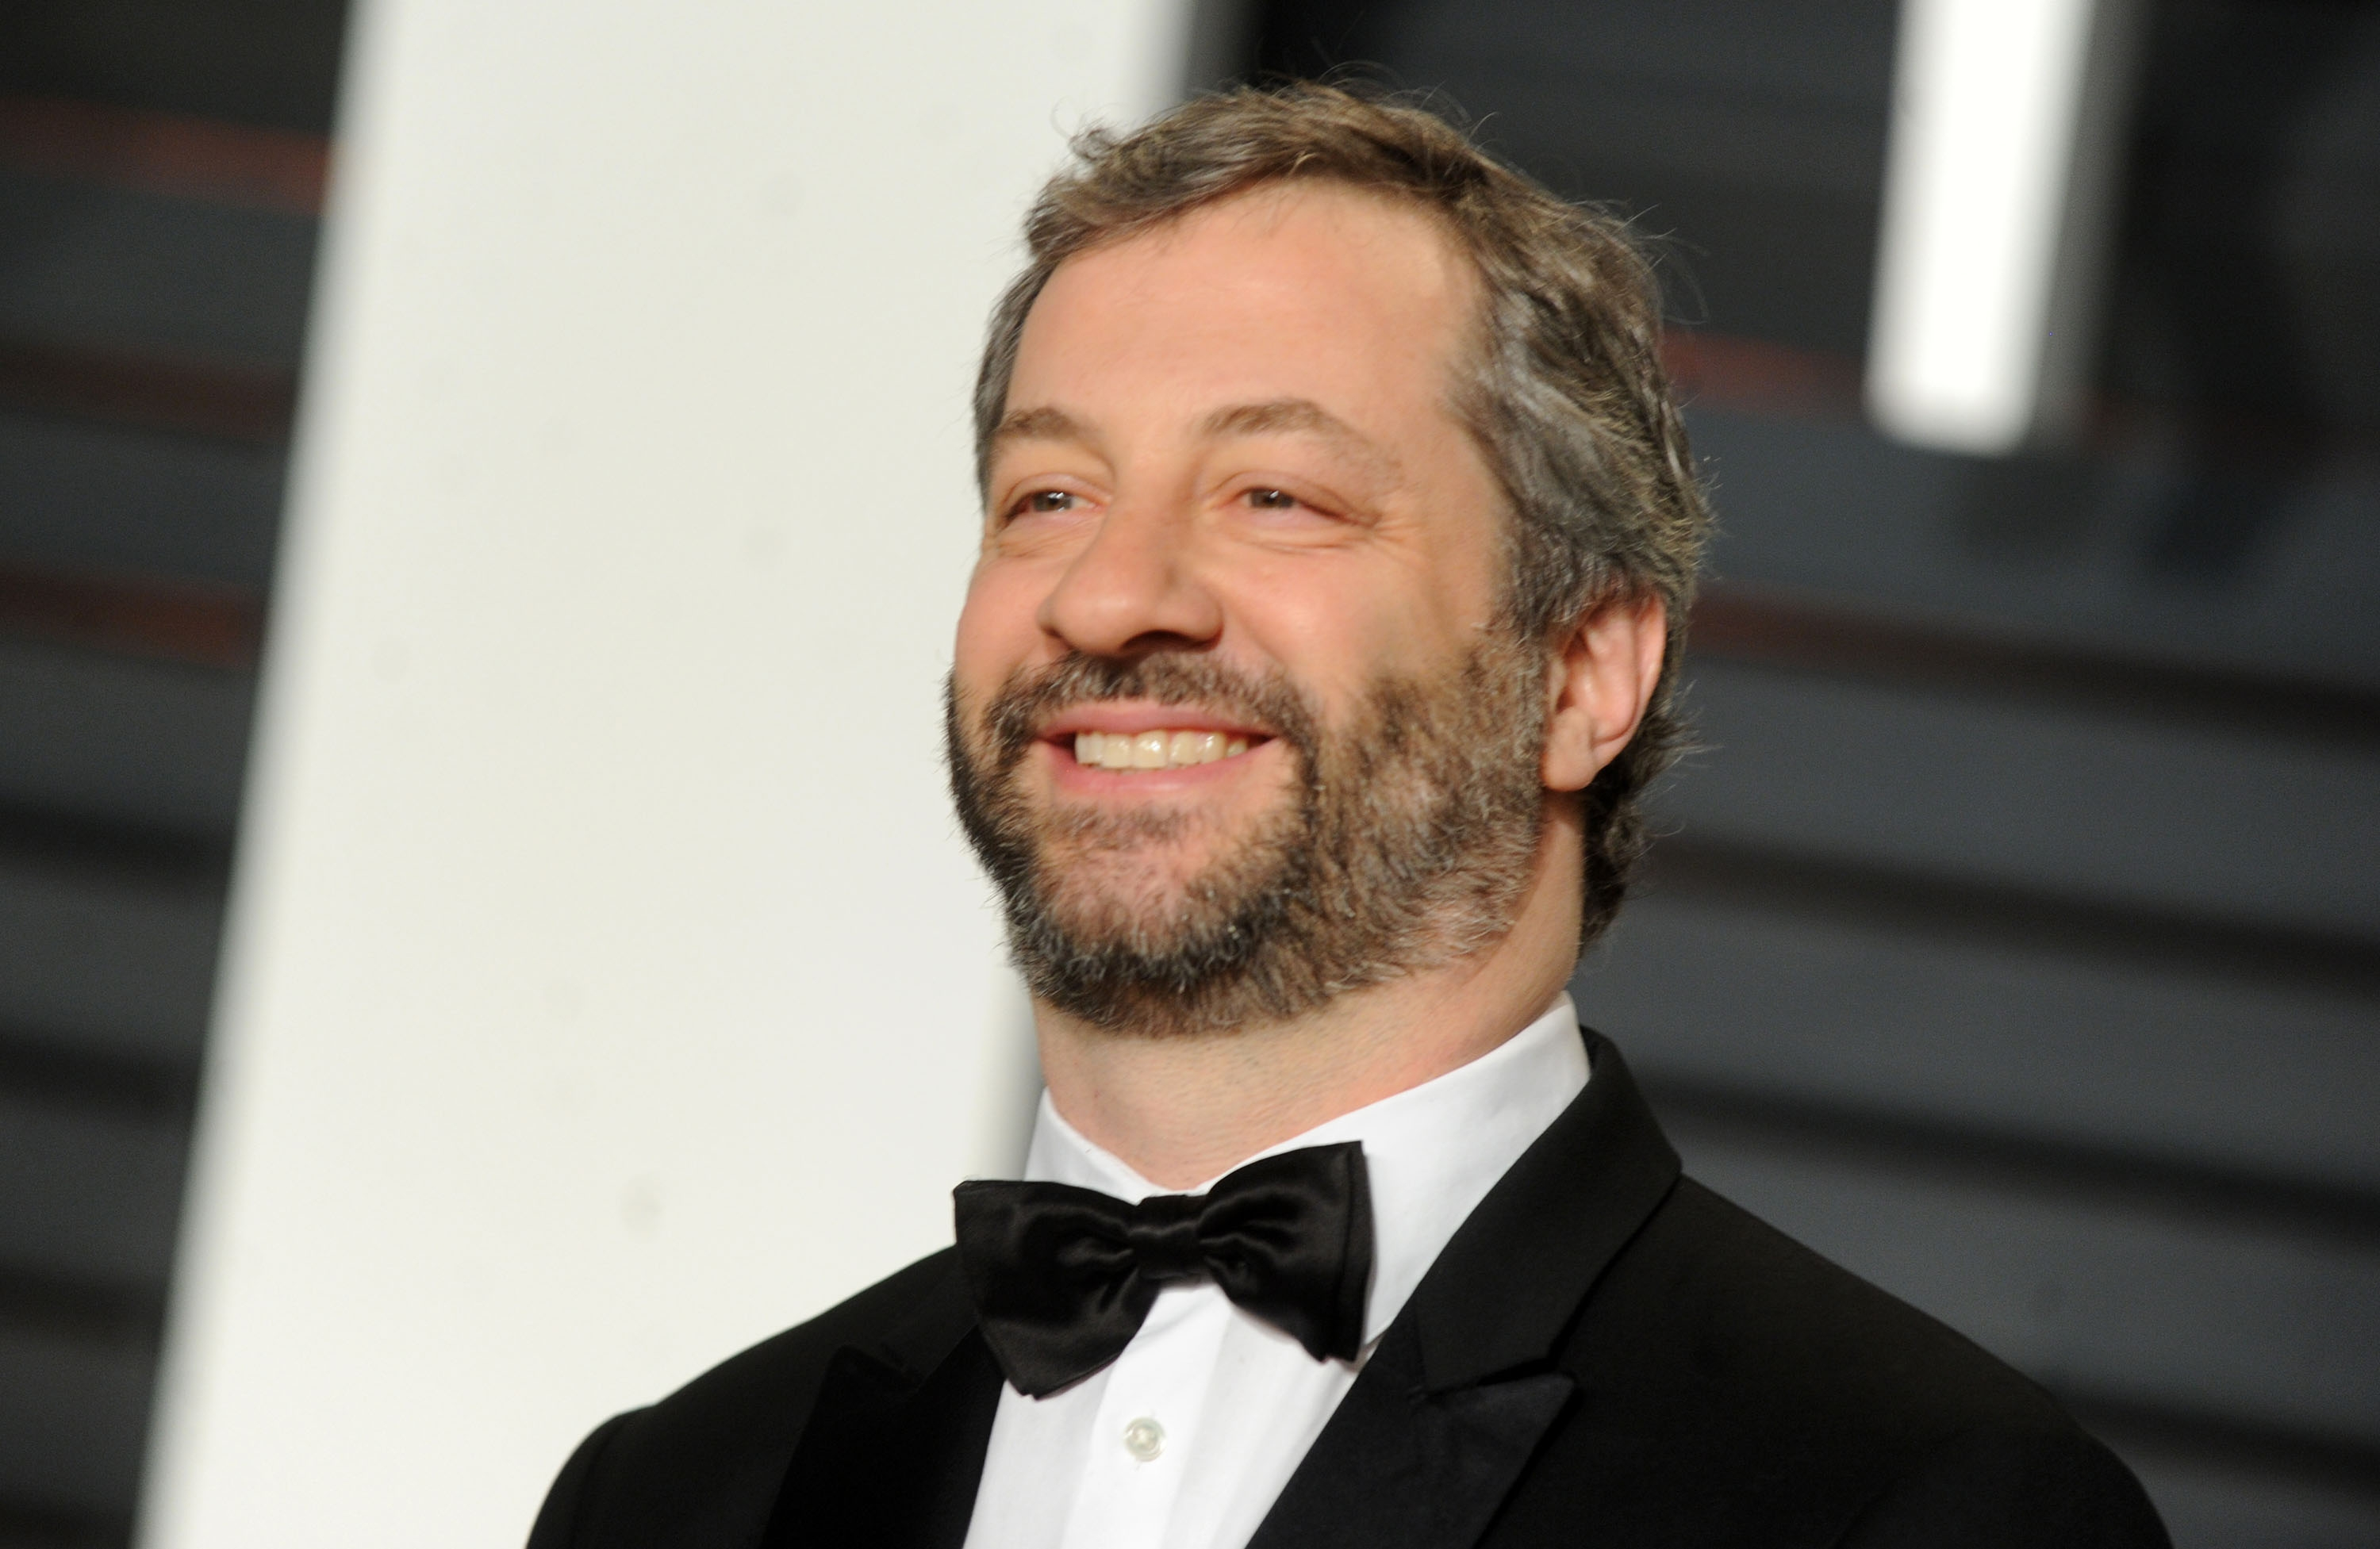 Judd Apatow says 'So much of the advice that was given to me when I was 15 and 16 years old, I took. Everything from the logistics of how to get on at a comedy club to discipline and patience.' (Dennis Van Tine/Abaca Press/TNS)